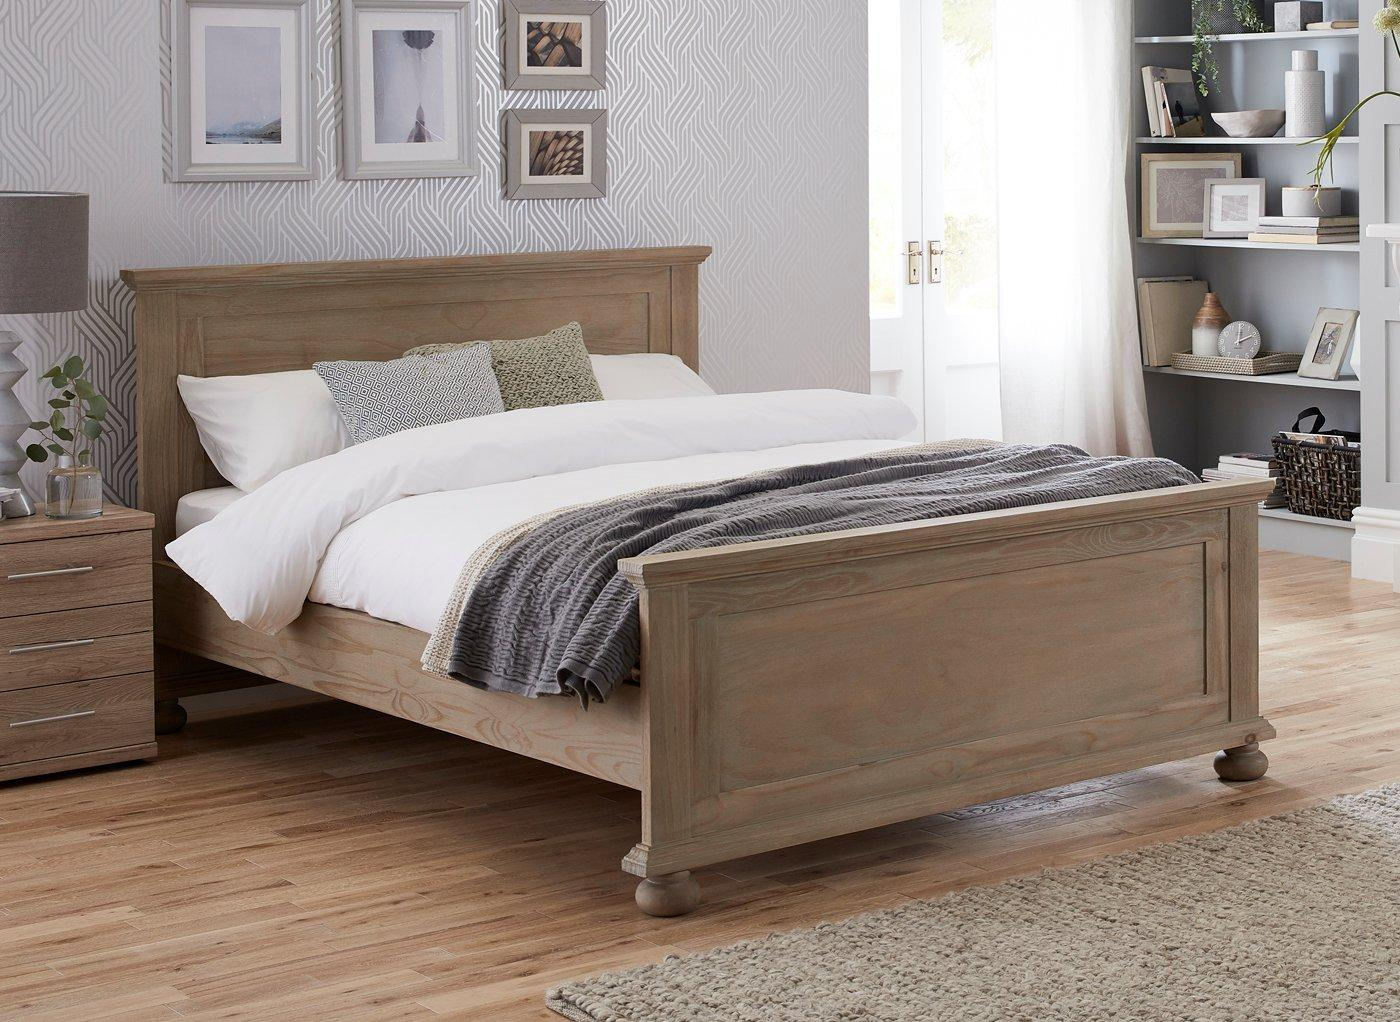 Cheap Wooden Bed Frames Jameson Natural Pine Wooden Bed Frame Wooden Beds Beds